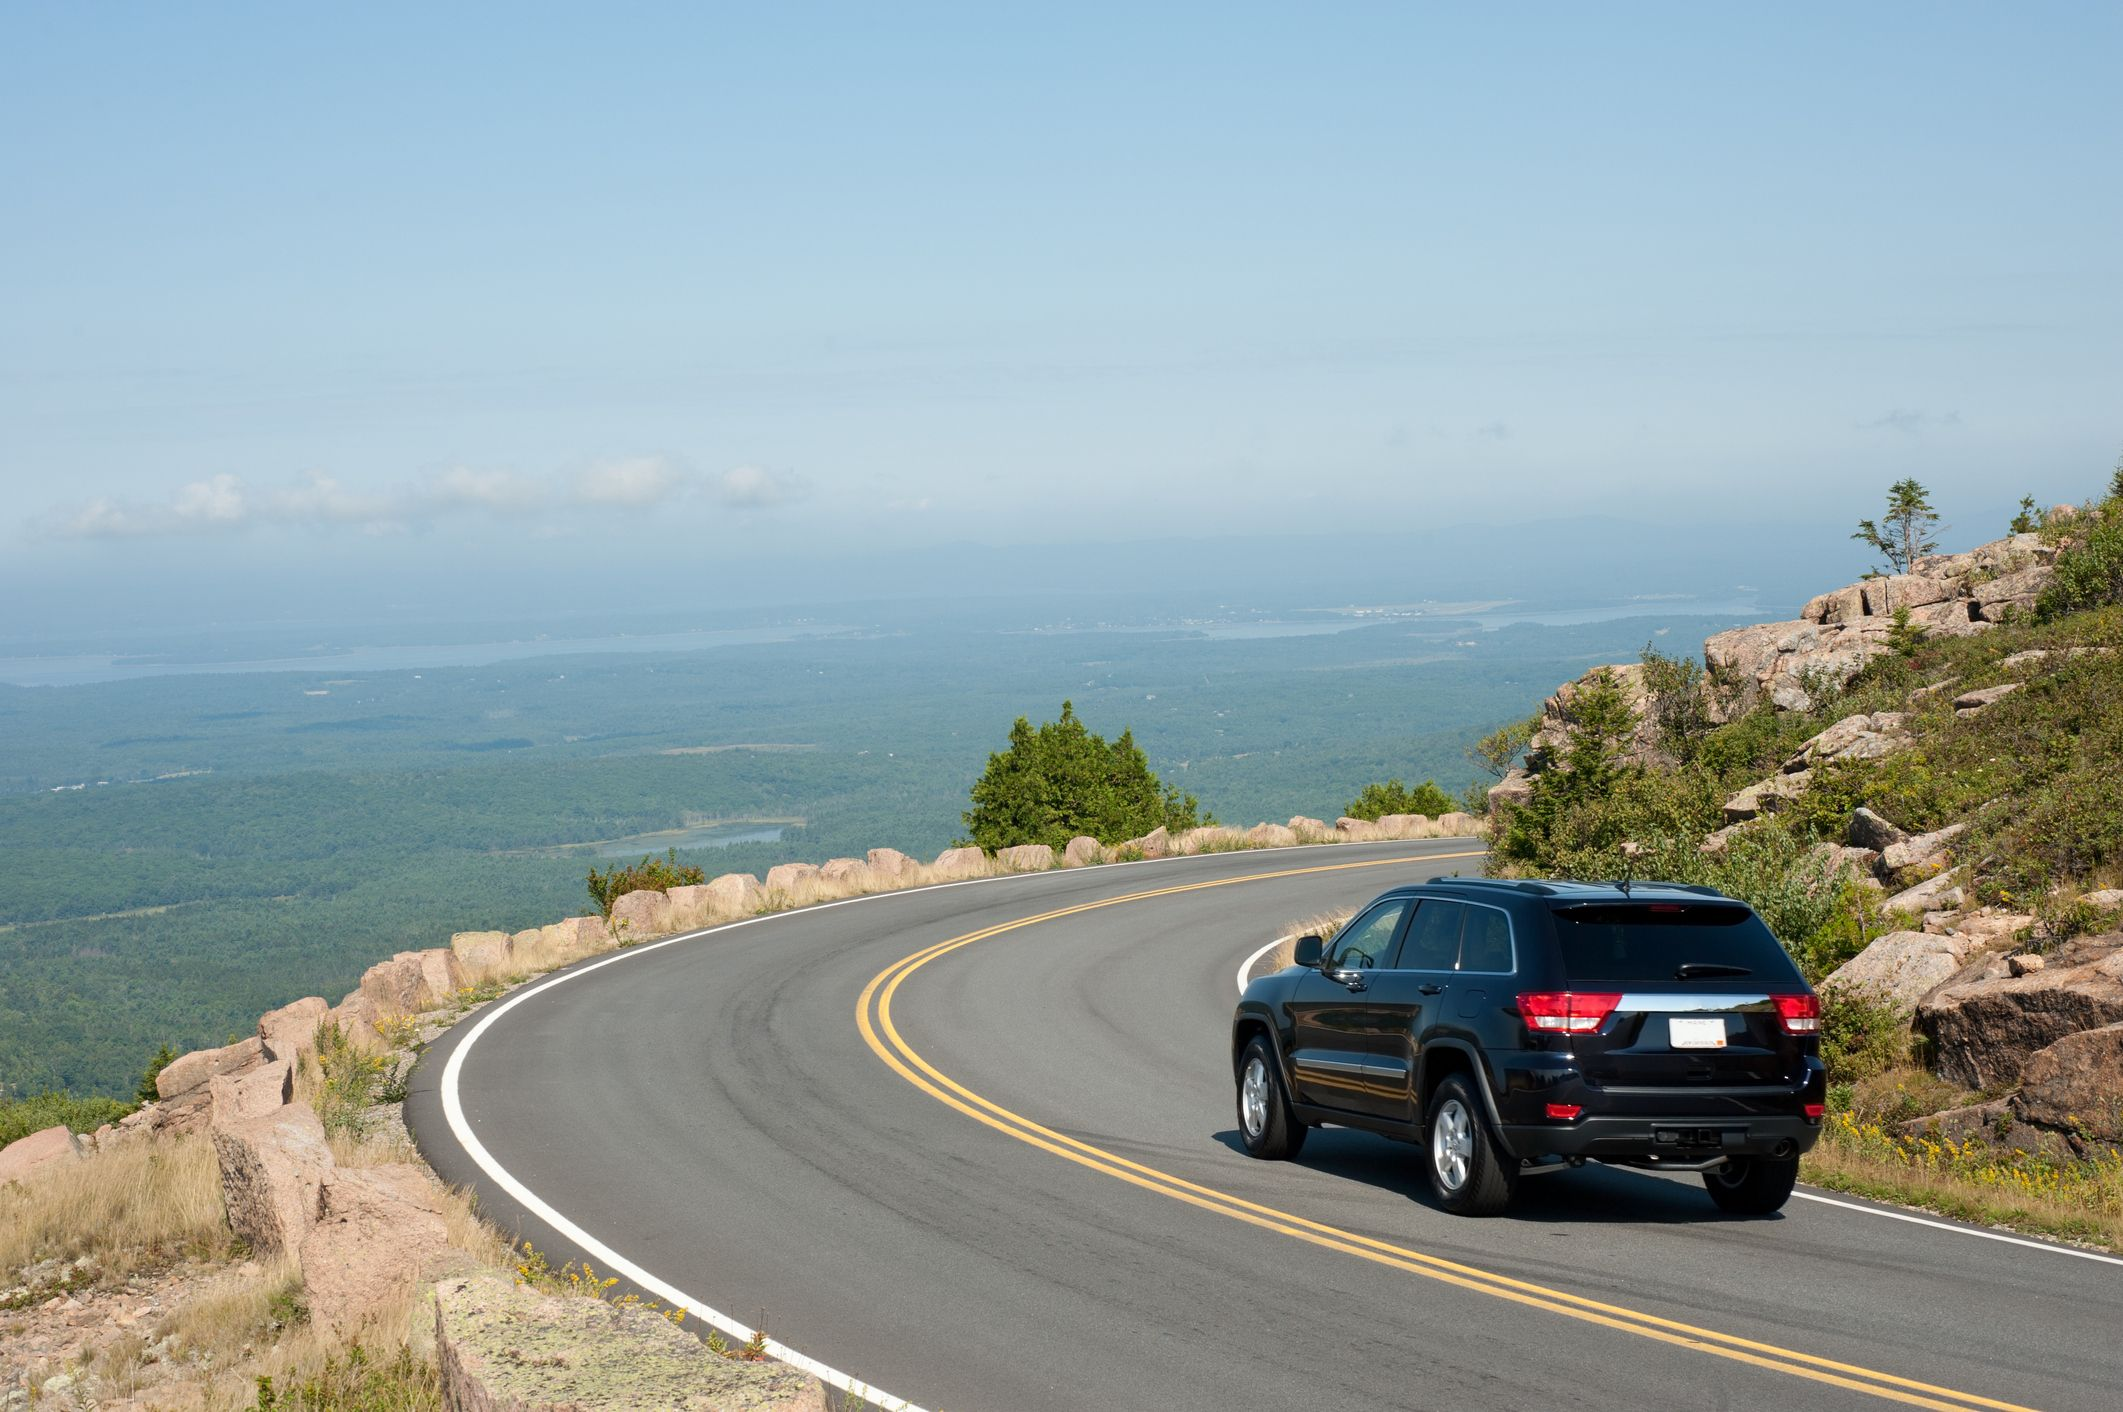 Are You Looking After Your SUV? 7 Tips to Keep Your SUV in